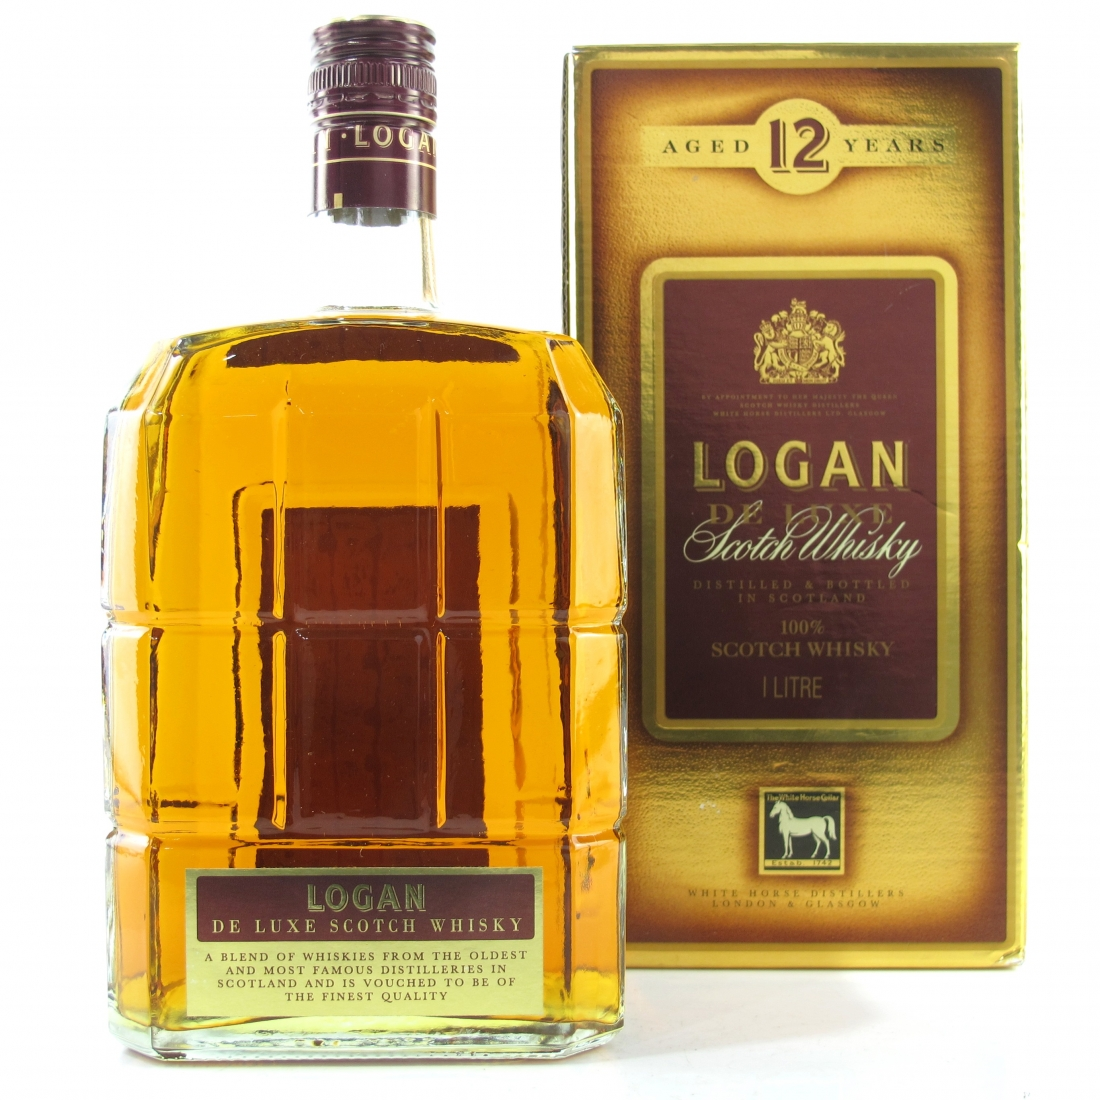 Logan De Luxe 12 Year Old 1 Litre